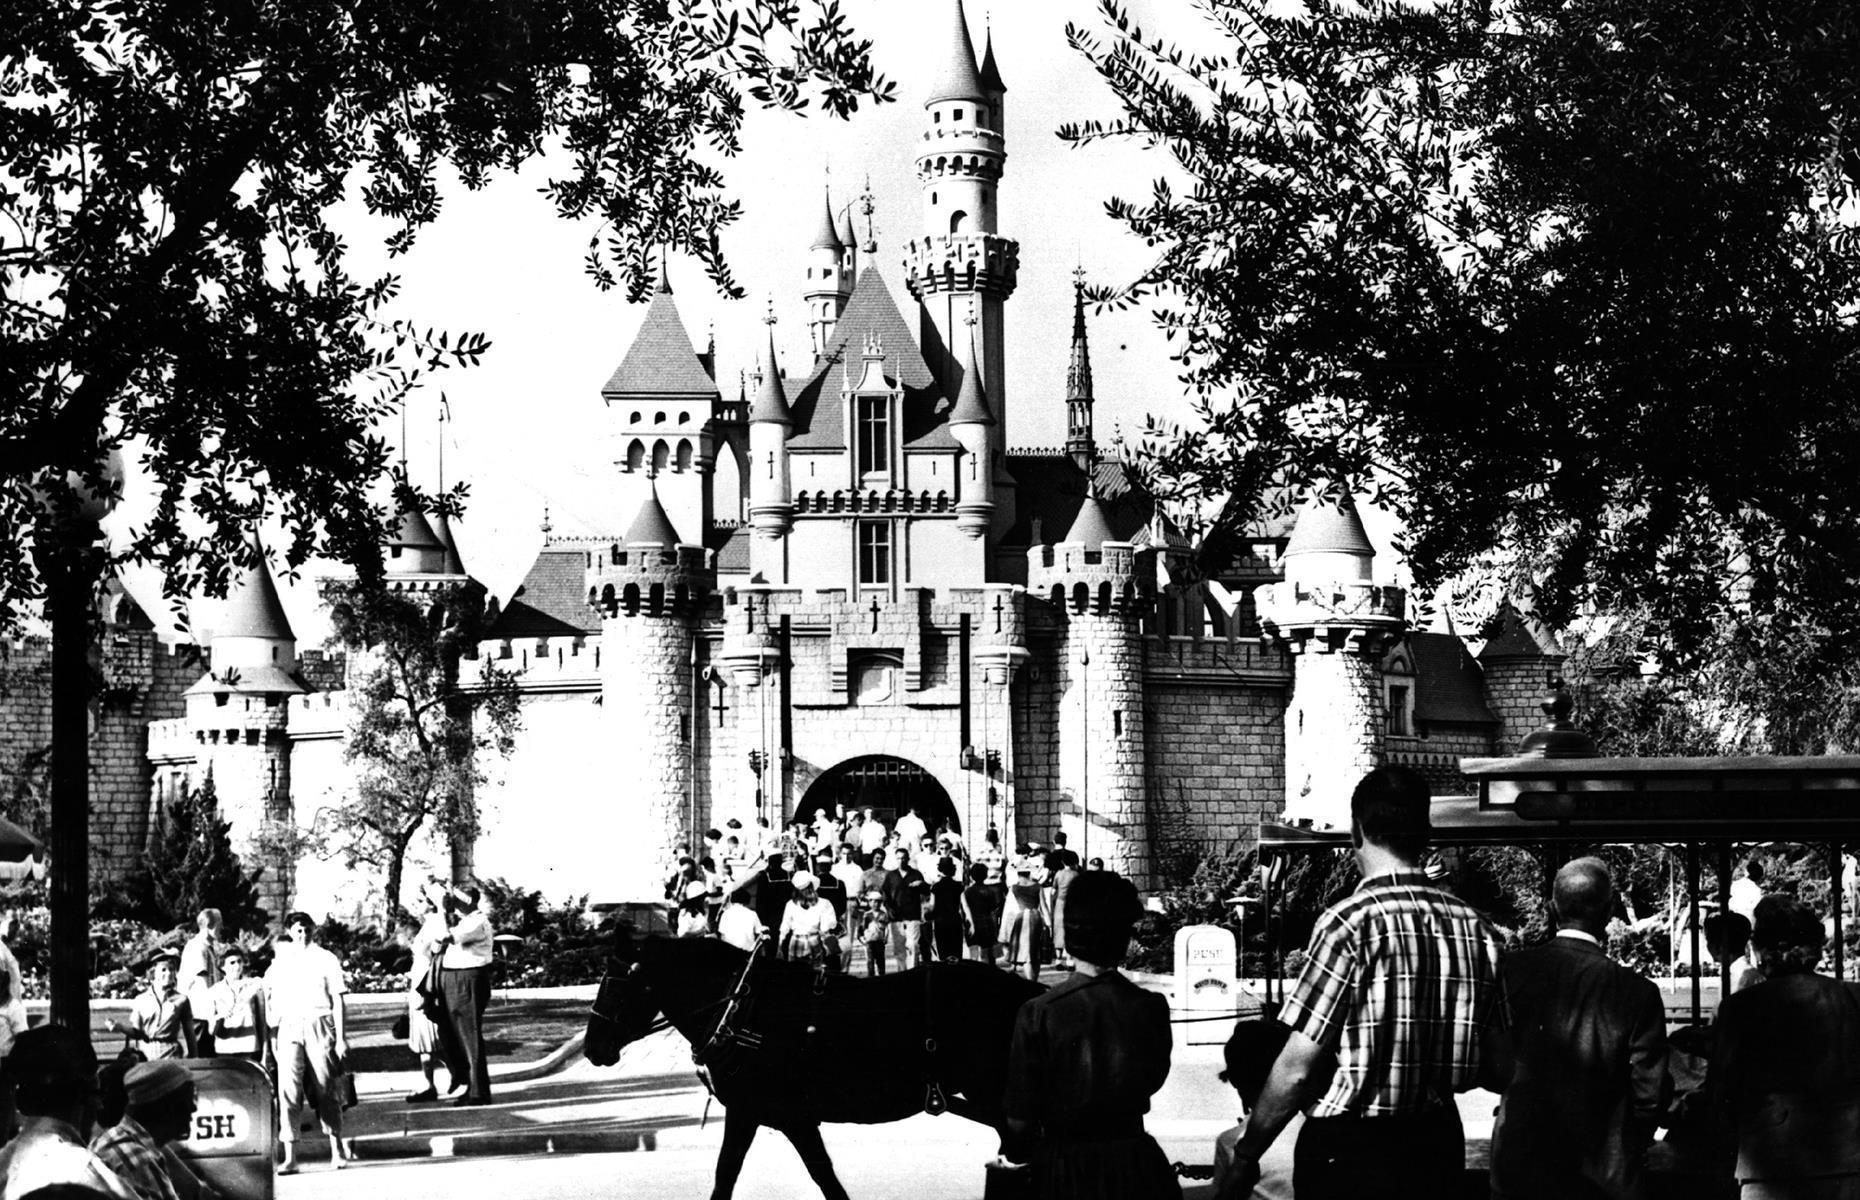 Slide 41 of 51: Disneyland (renamed Disneyland Park in the 1990s) opened on 17 July 1955 and the Sleeping Beauty Castle, which is modeled on Neuschwanstein Castle in Bavaria, Germany, is its most recognizable attraction. It's been popular since the get-go, receiving 28,000 people on its opening day – some were so desperate to get in that they jumped the fence. This picture shows its popularity continued well into the 1960s, as tourists surround the fairy-tale fortress, and it's no different today in normal circumstances (currently closed due to COVID-19). See more historic pictures of Disney's parks here.